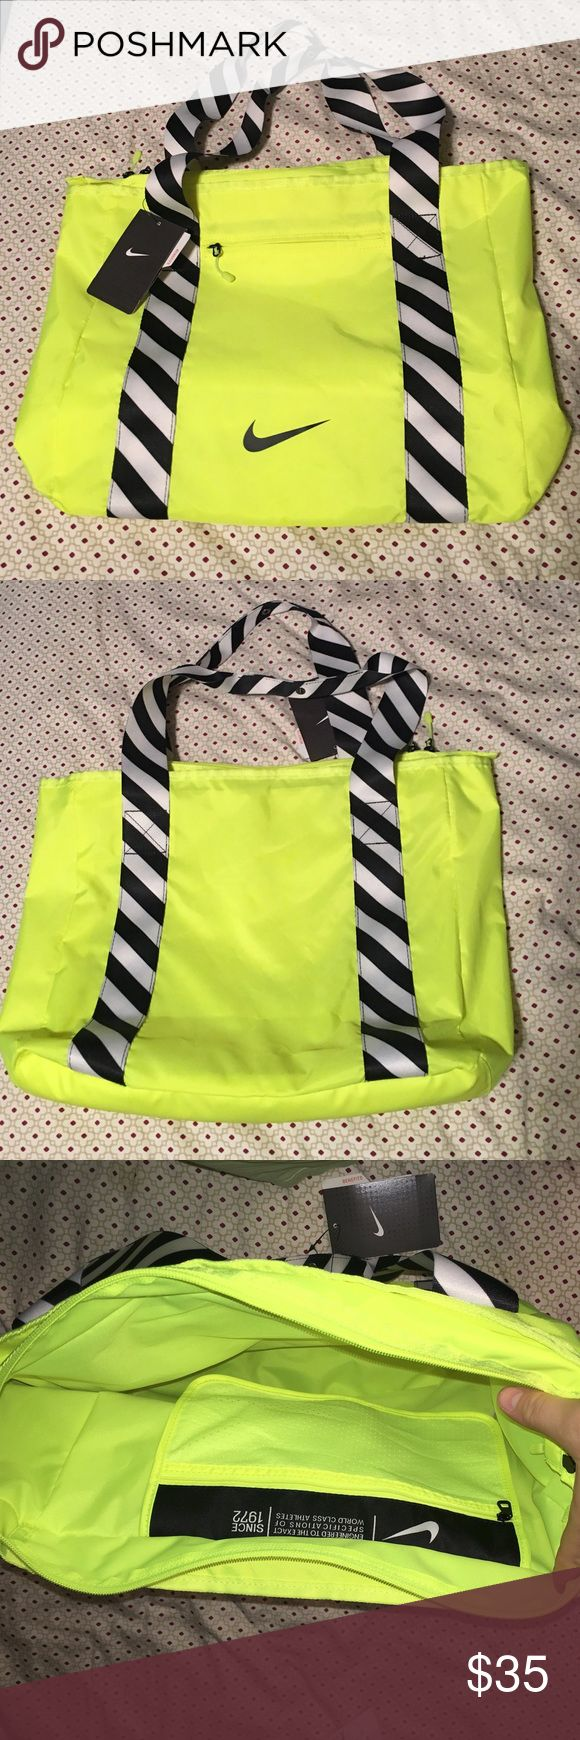 Nike Shoulder Bag Brand new Nike shoulder bag, zips shut with small outer zip pocket and inside zip pouch as pictured. Perfect for the gym, school, or just everyday carry bag! Neon yellow with black and white striped handle. Handles also snap together at the top so they won't fall apart while on your shoulder. Open to offers and questions! 😌 Nike Bags Shoulder Bags